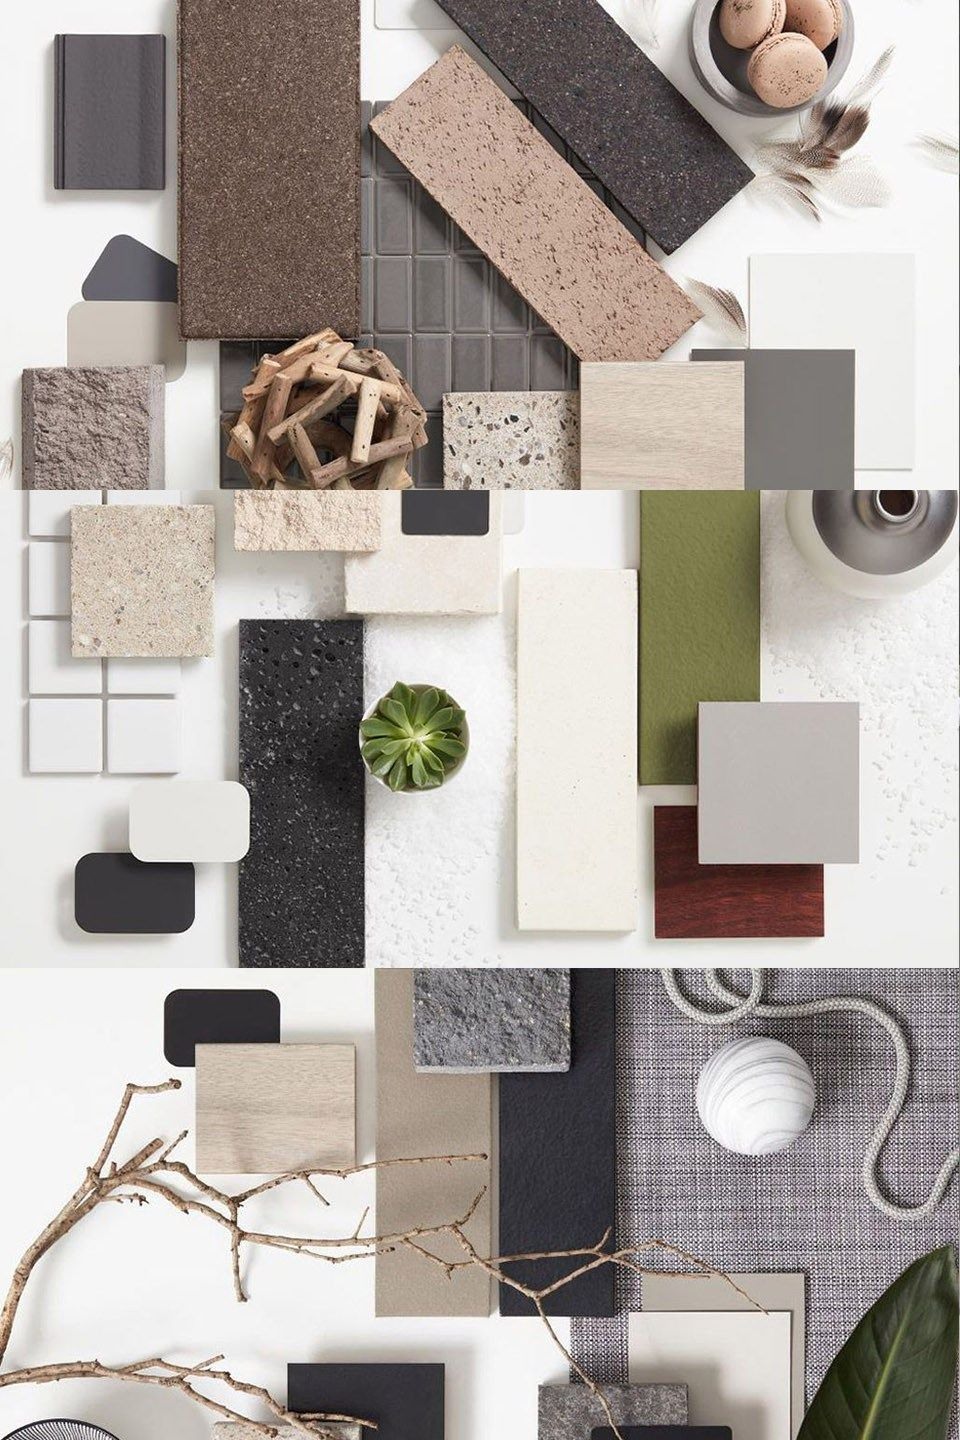 Top 2017 interior trends in moodboards | Material board | Pinterest ...